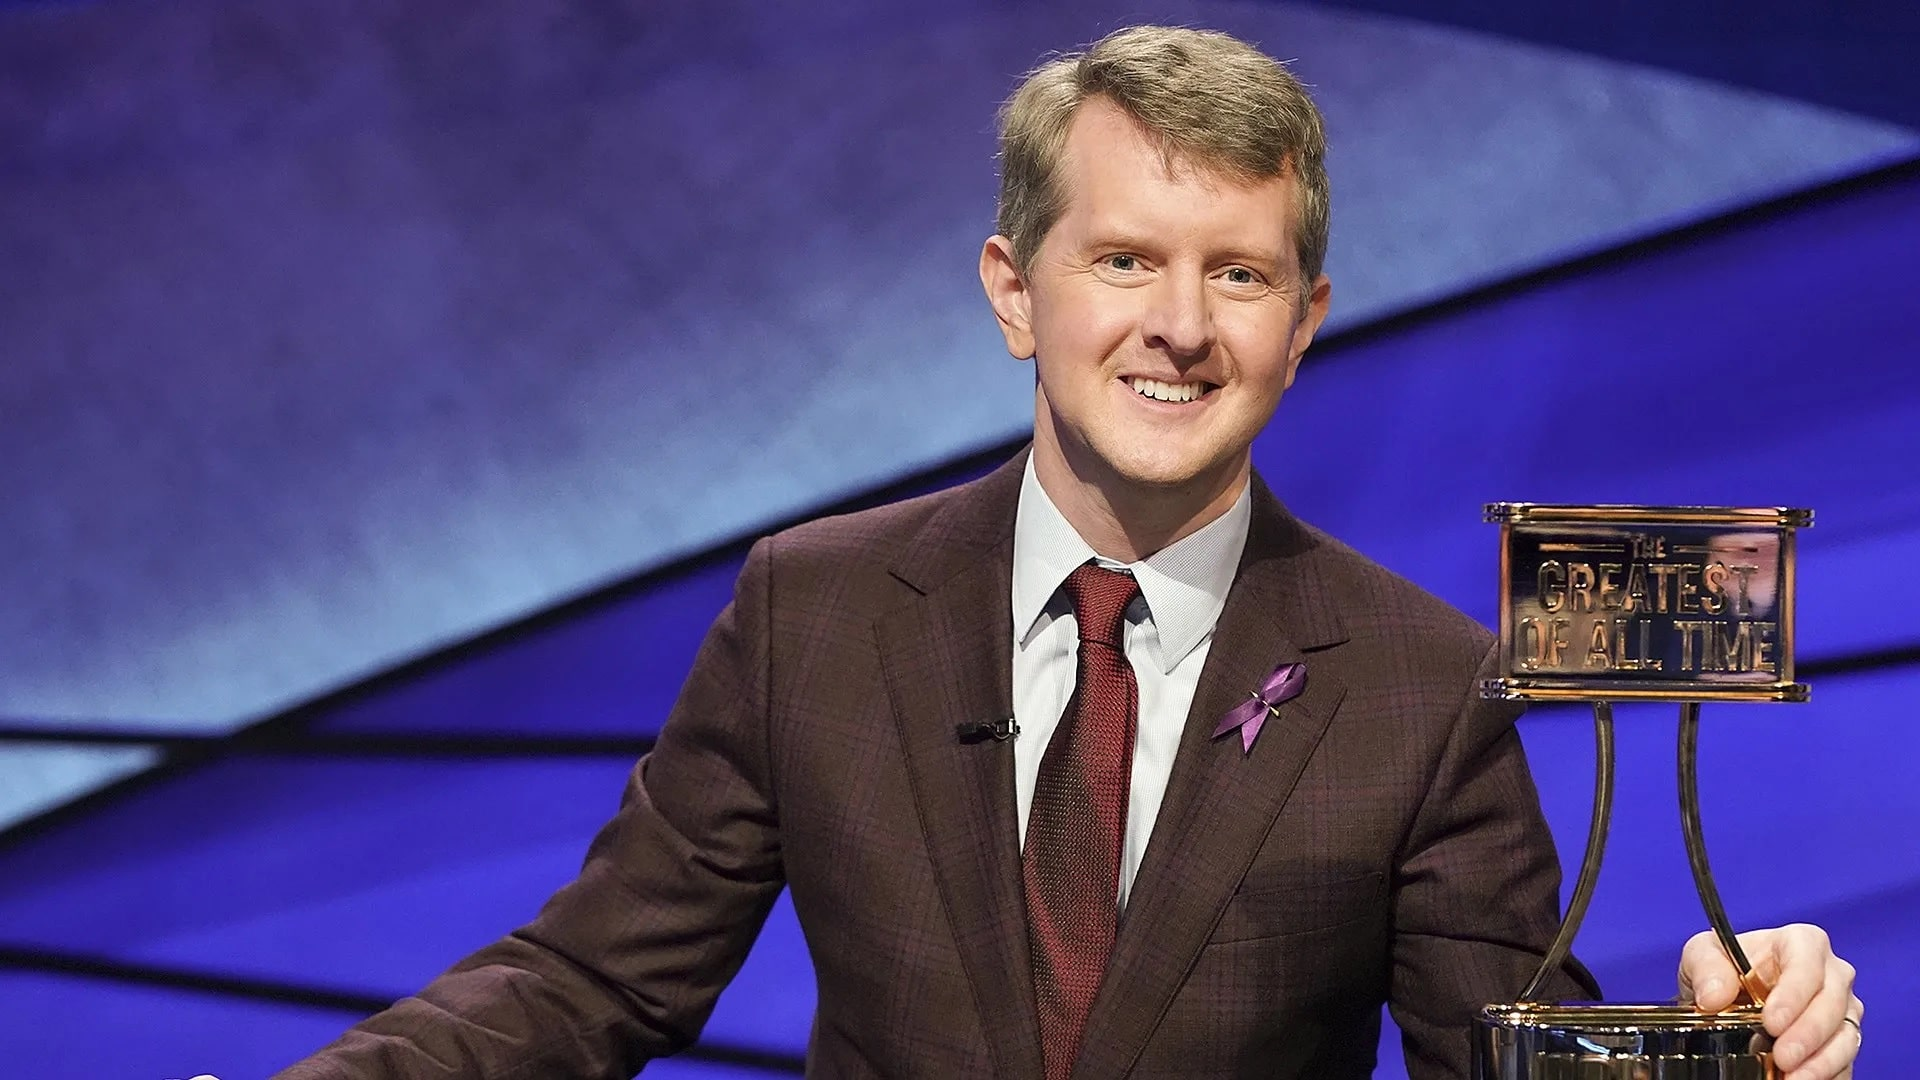 Ken Jennings is the first confirmed Jeopardy! interim host. Katie Couric will reportedly helm the game show after Jennings' stint.